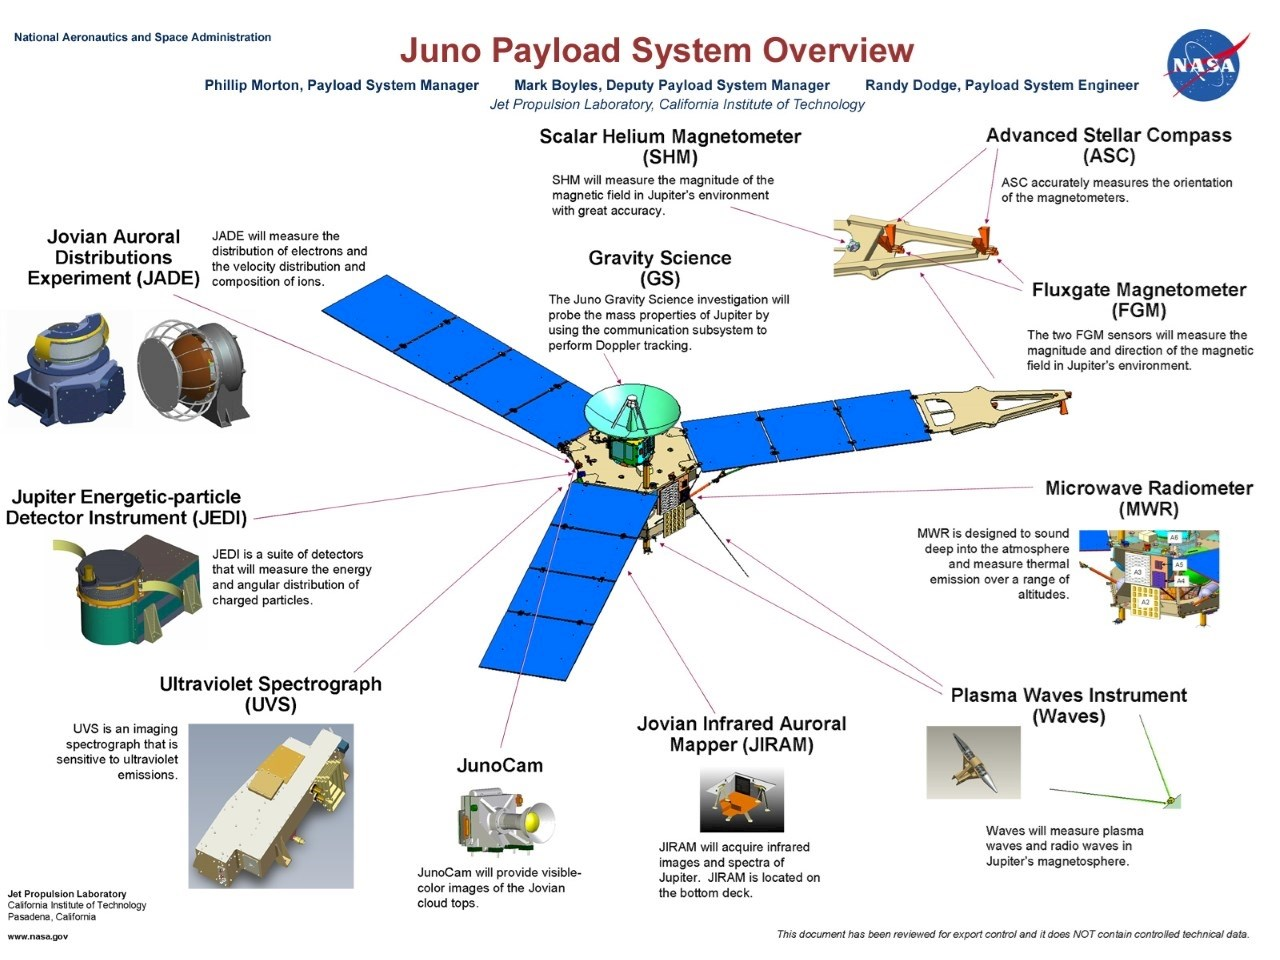 Juno spacecraft payload system overview